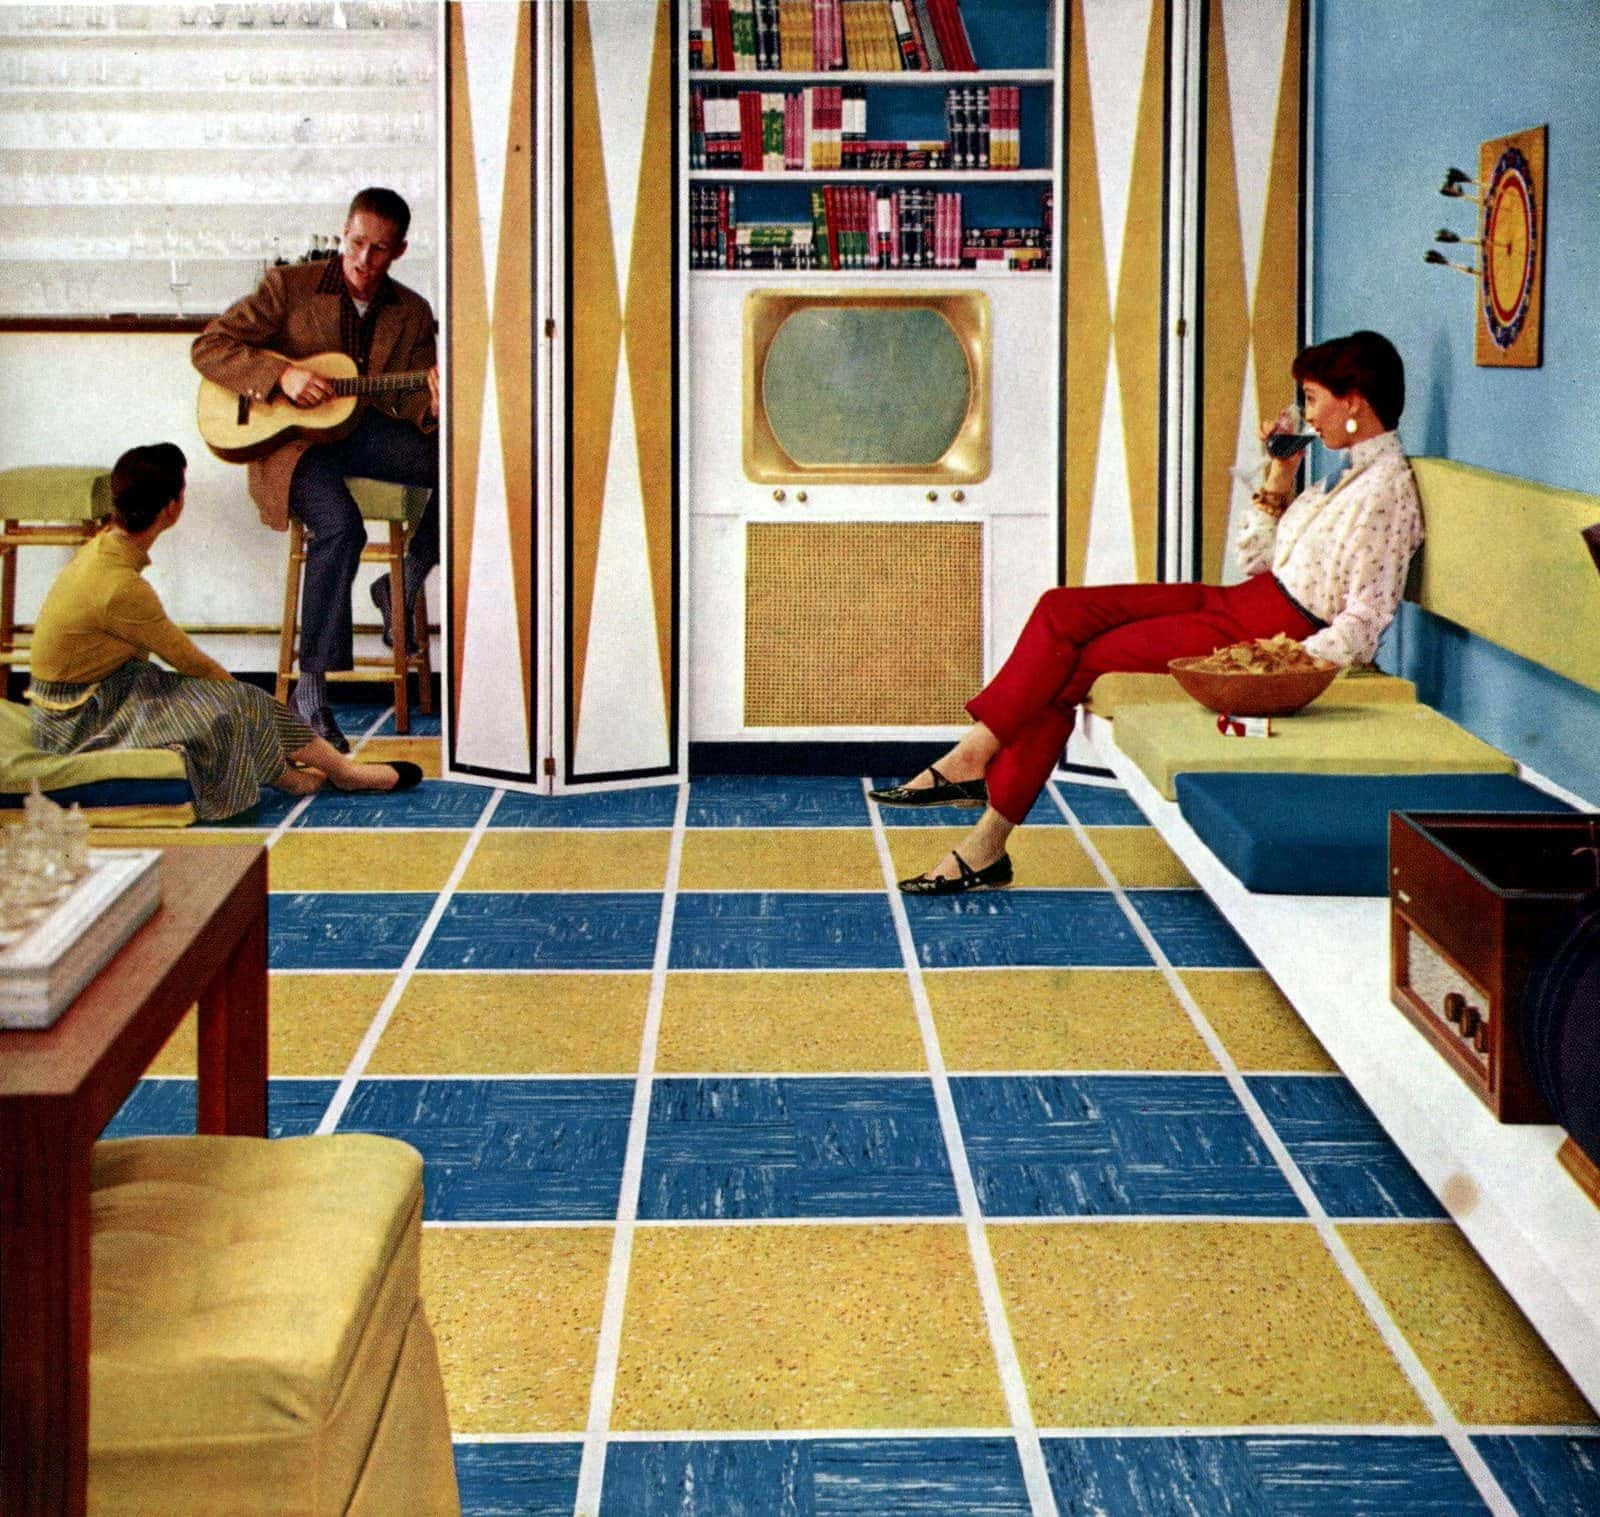 Huge floor patterns - Retro home decor from the 50s (2)